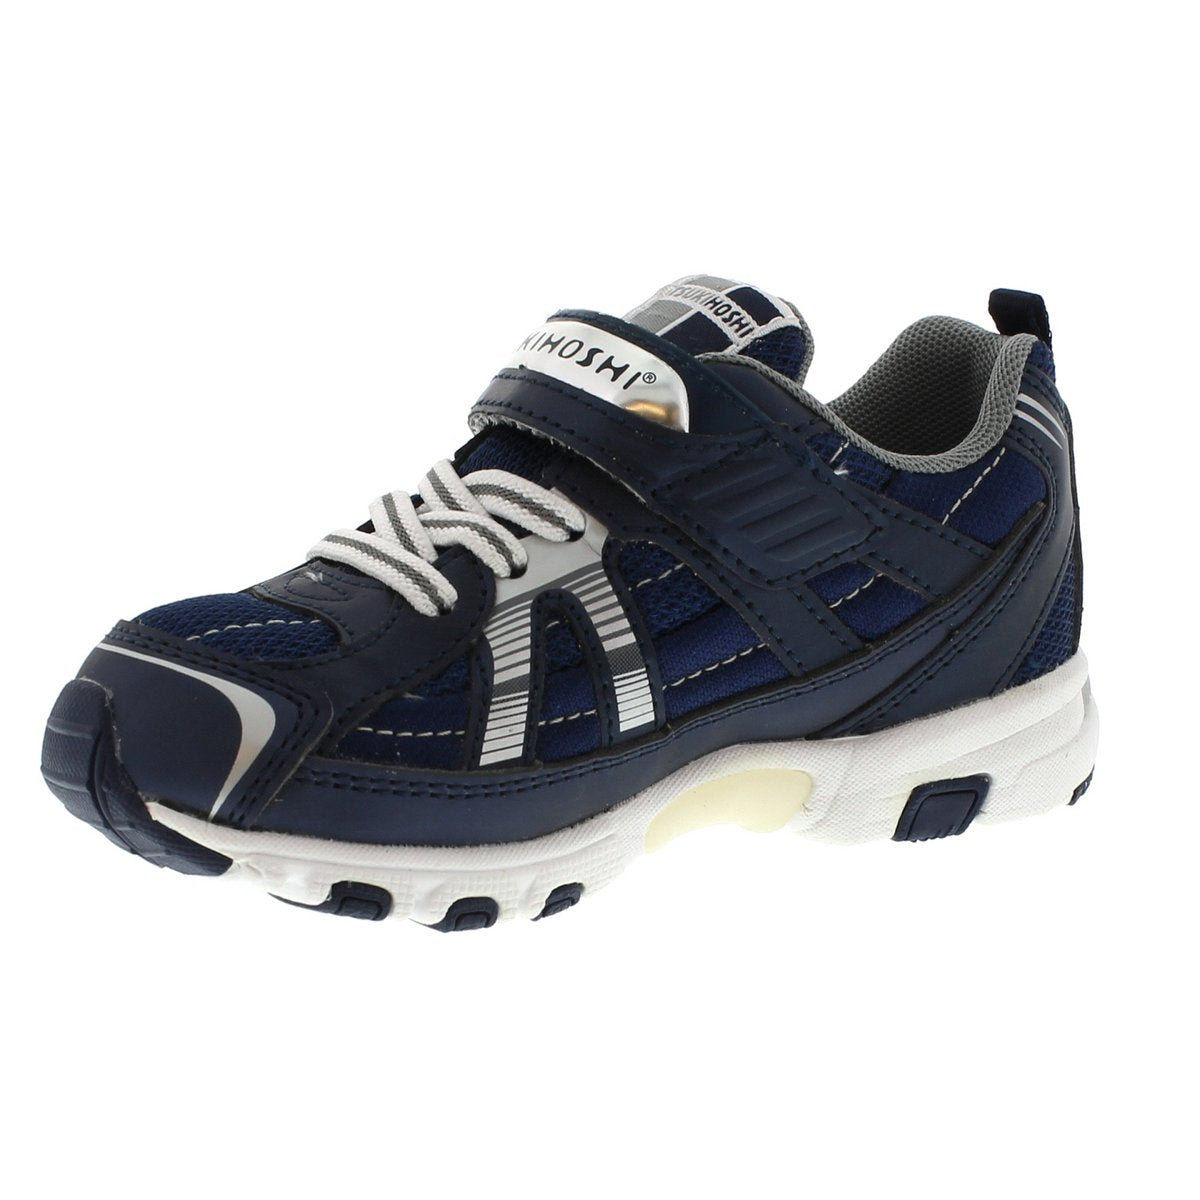 Child Tsukihoshi Storm Sneaker in Navy/Silver from the front view